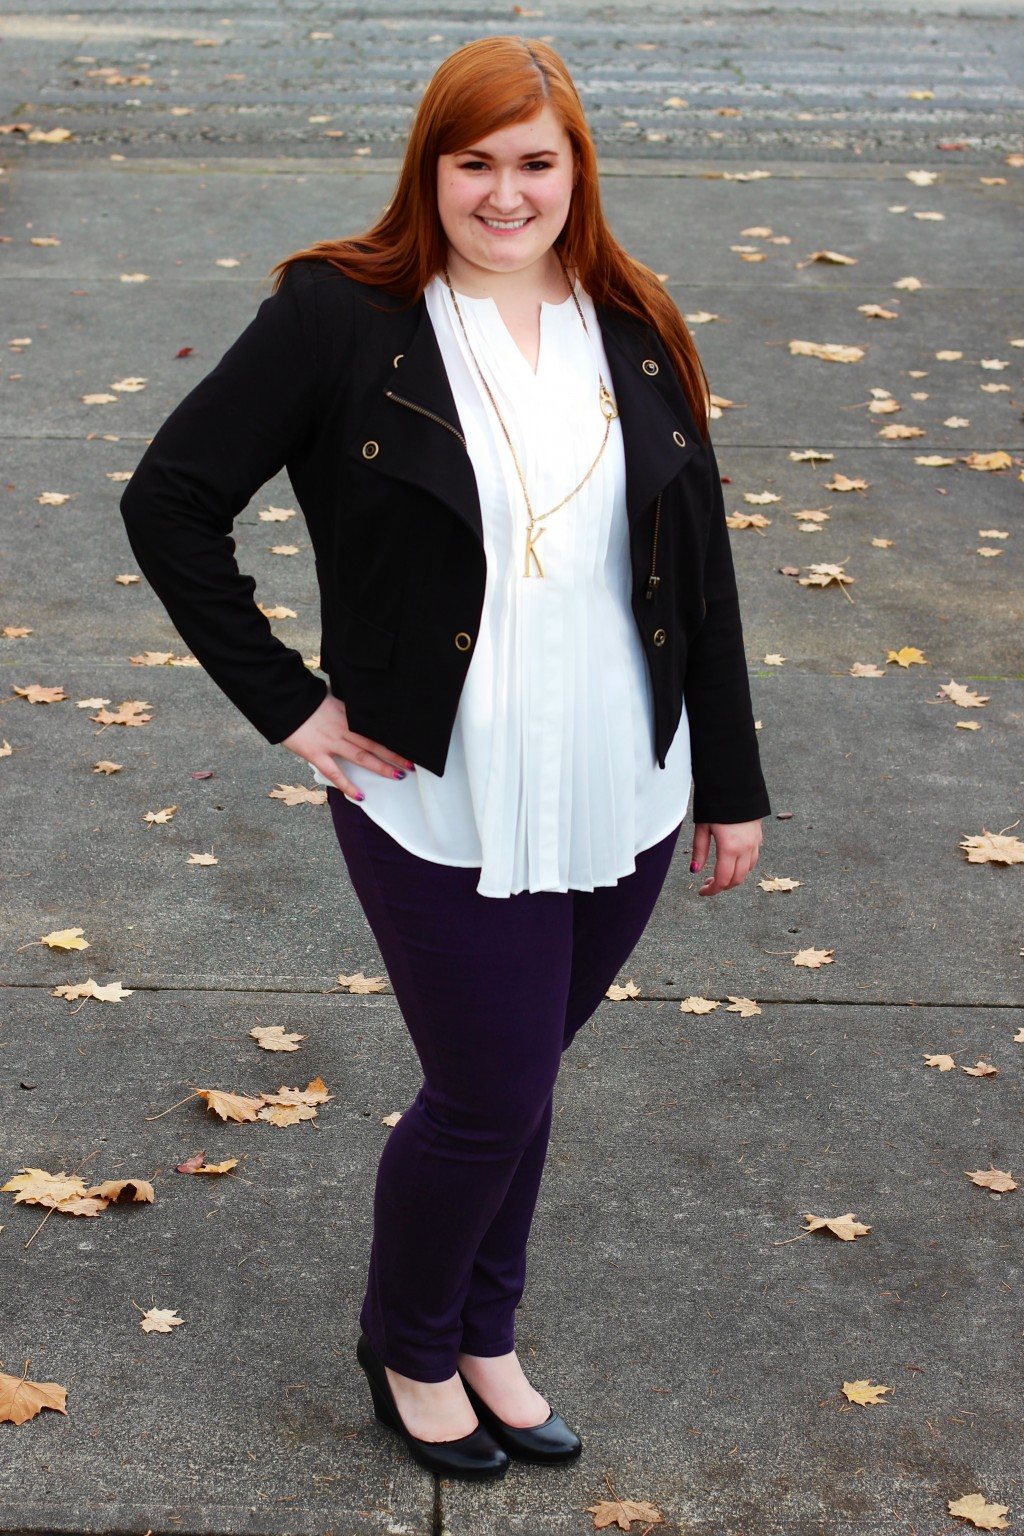 All Things Kate in Indigo by Clarks, Cabi, NYDJ, Lulu Frost, and INC